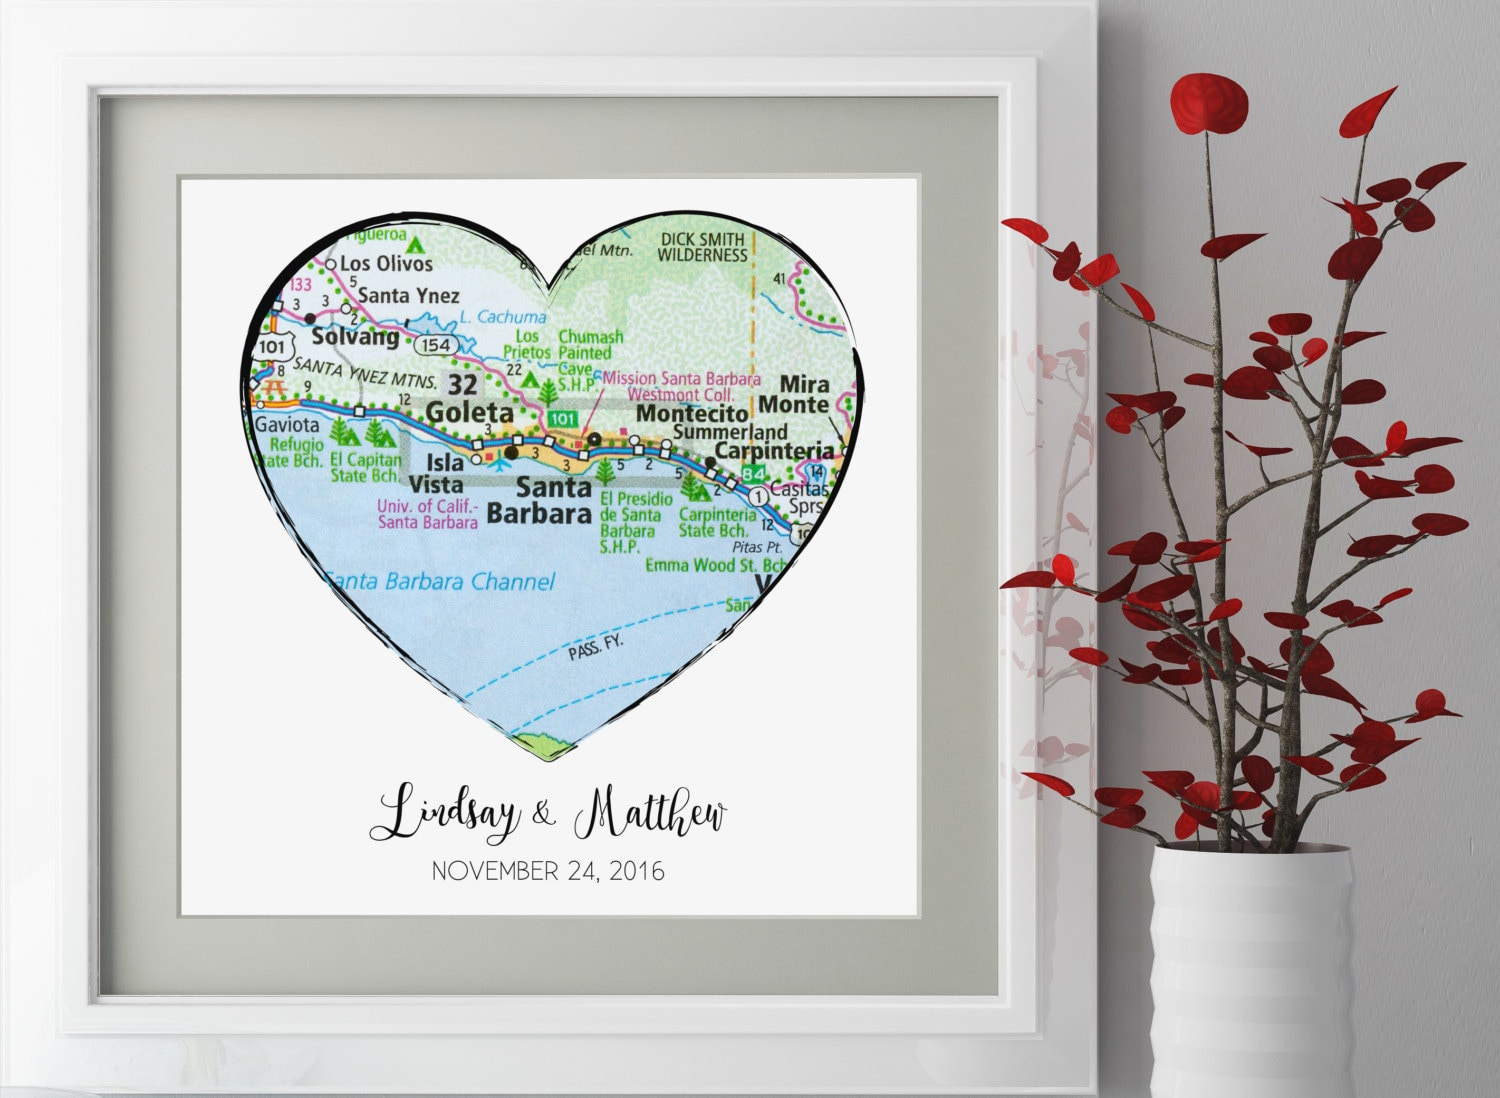 Wedding Gifts For Couple Etsy : Unique Wedding Gift For Couple Personalized by LovetoArtCo on Etsy